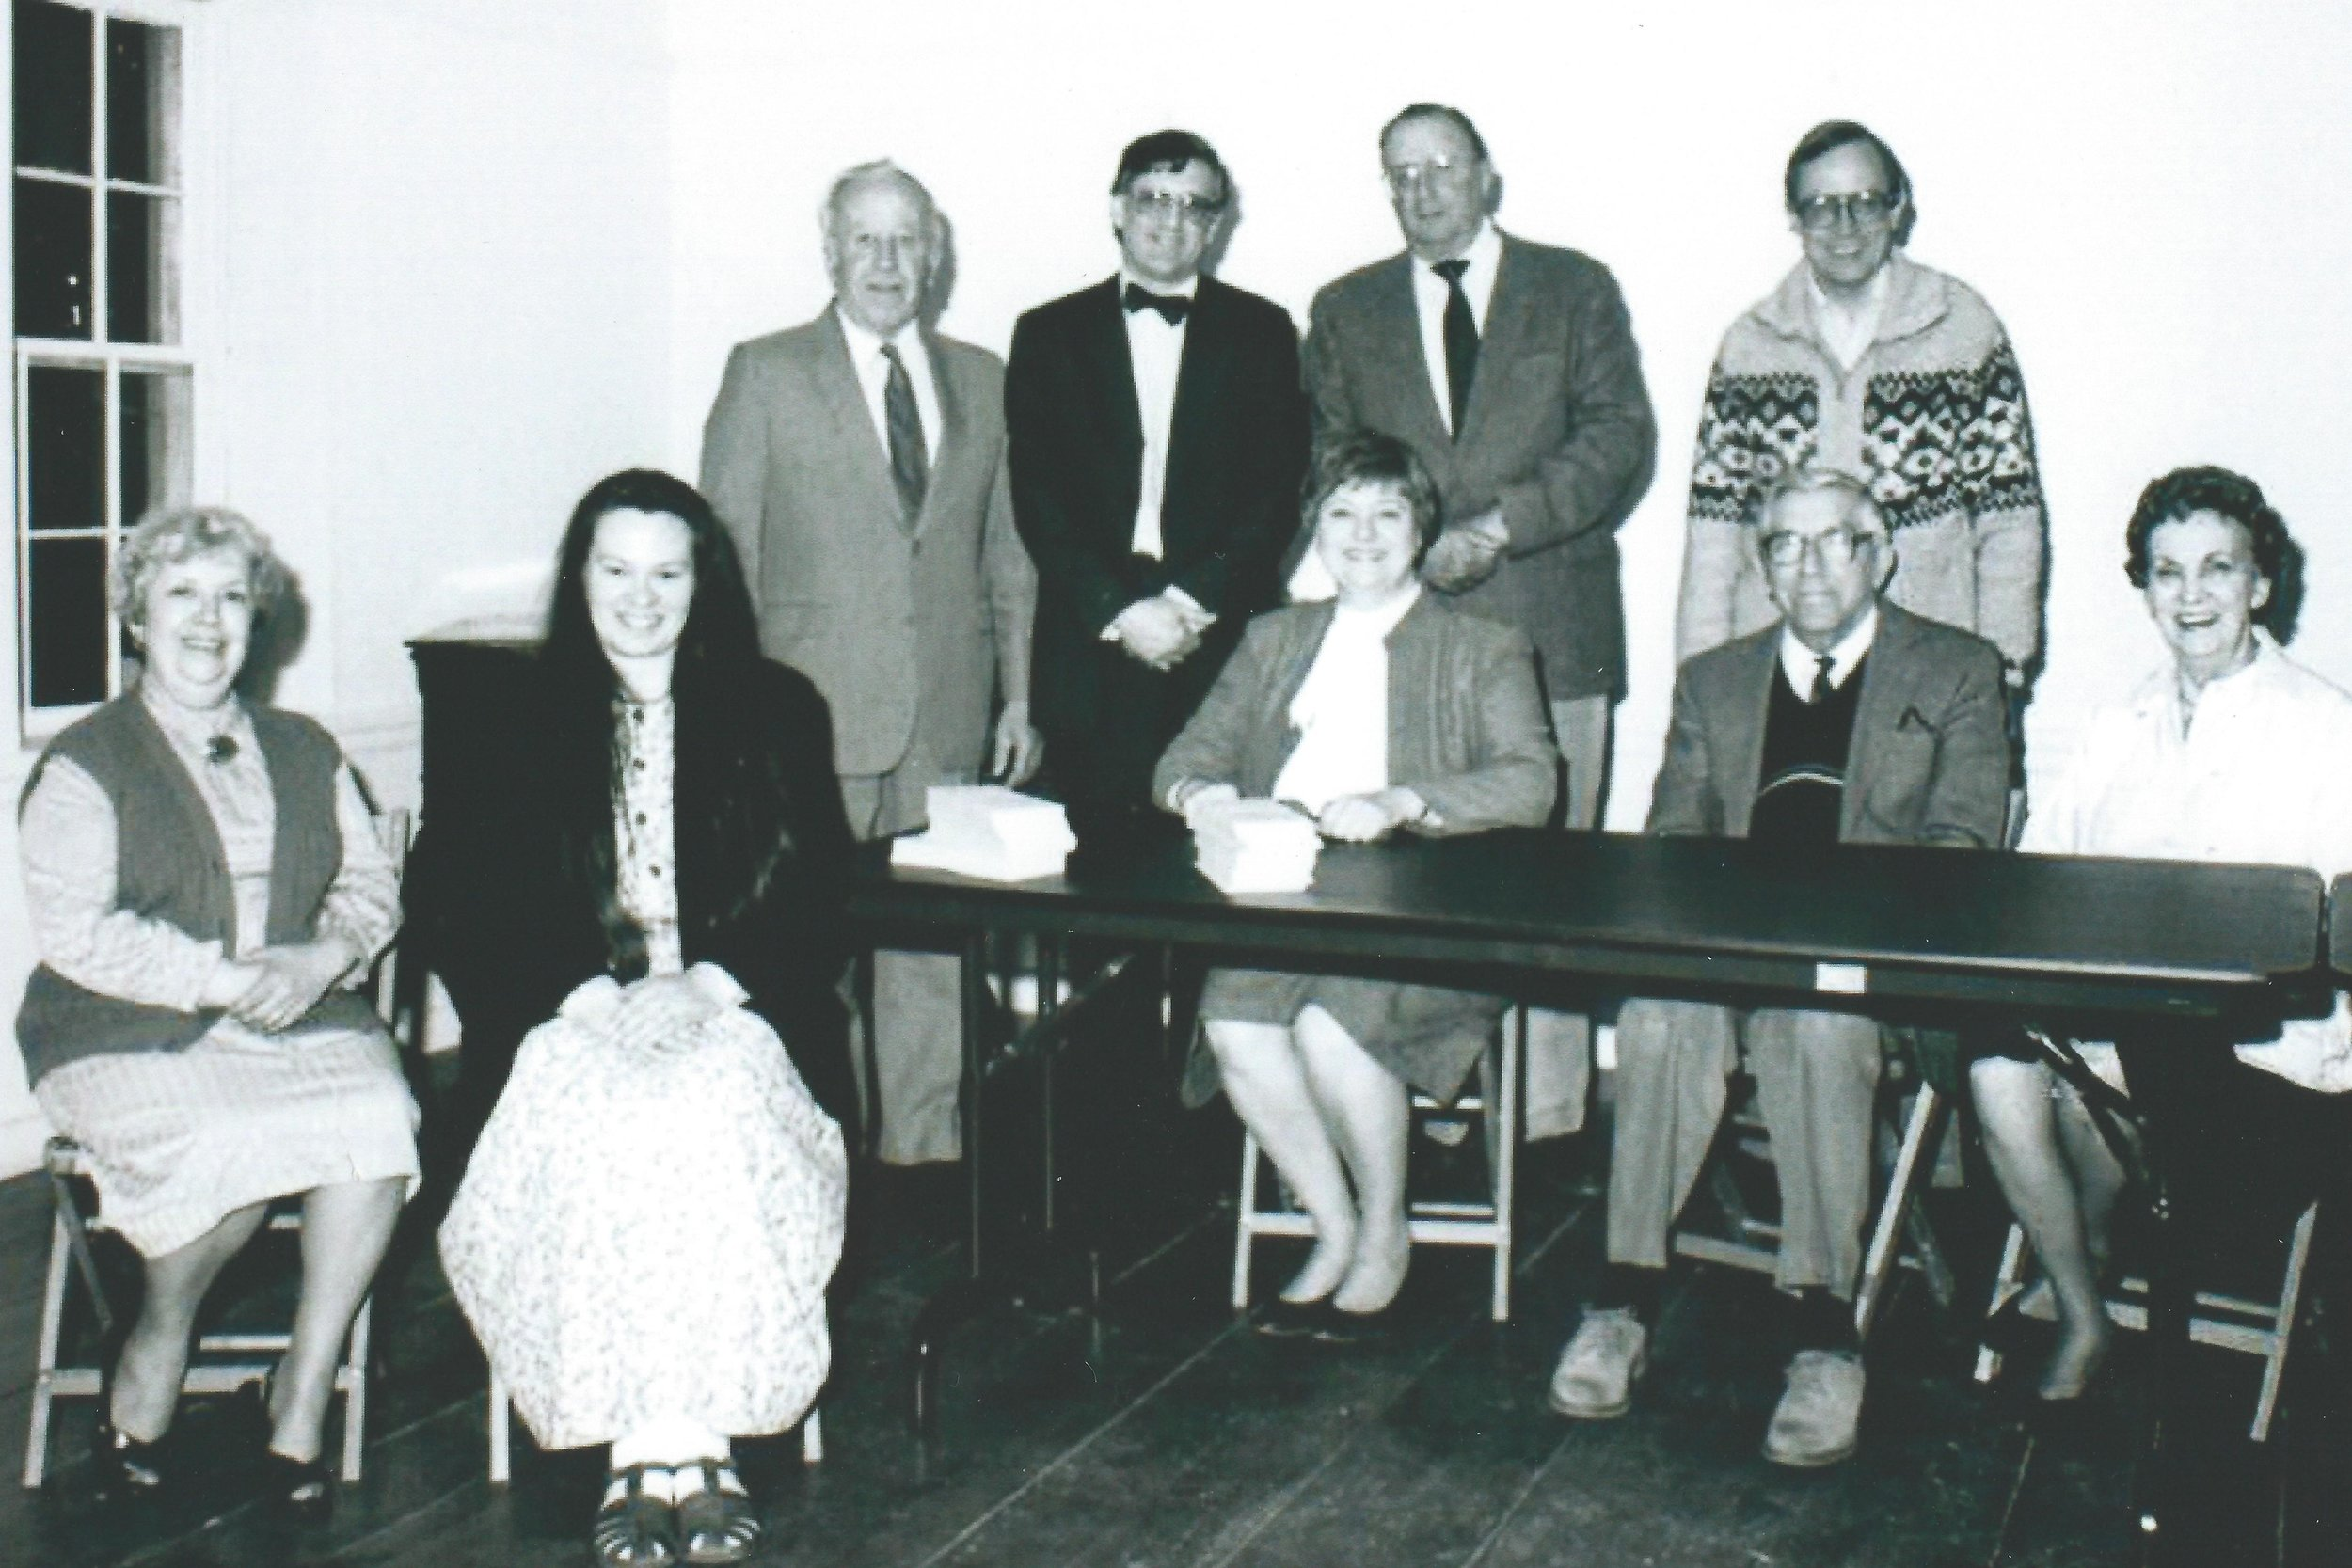 Founding Members of The Friends of the Ulysses S. Grant Cottage